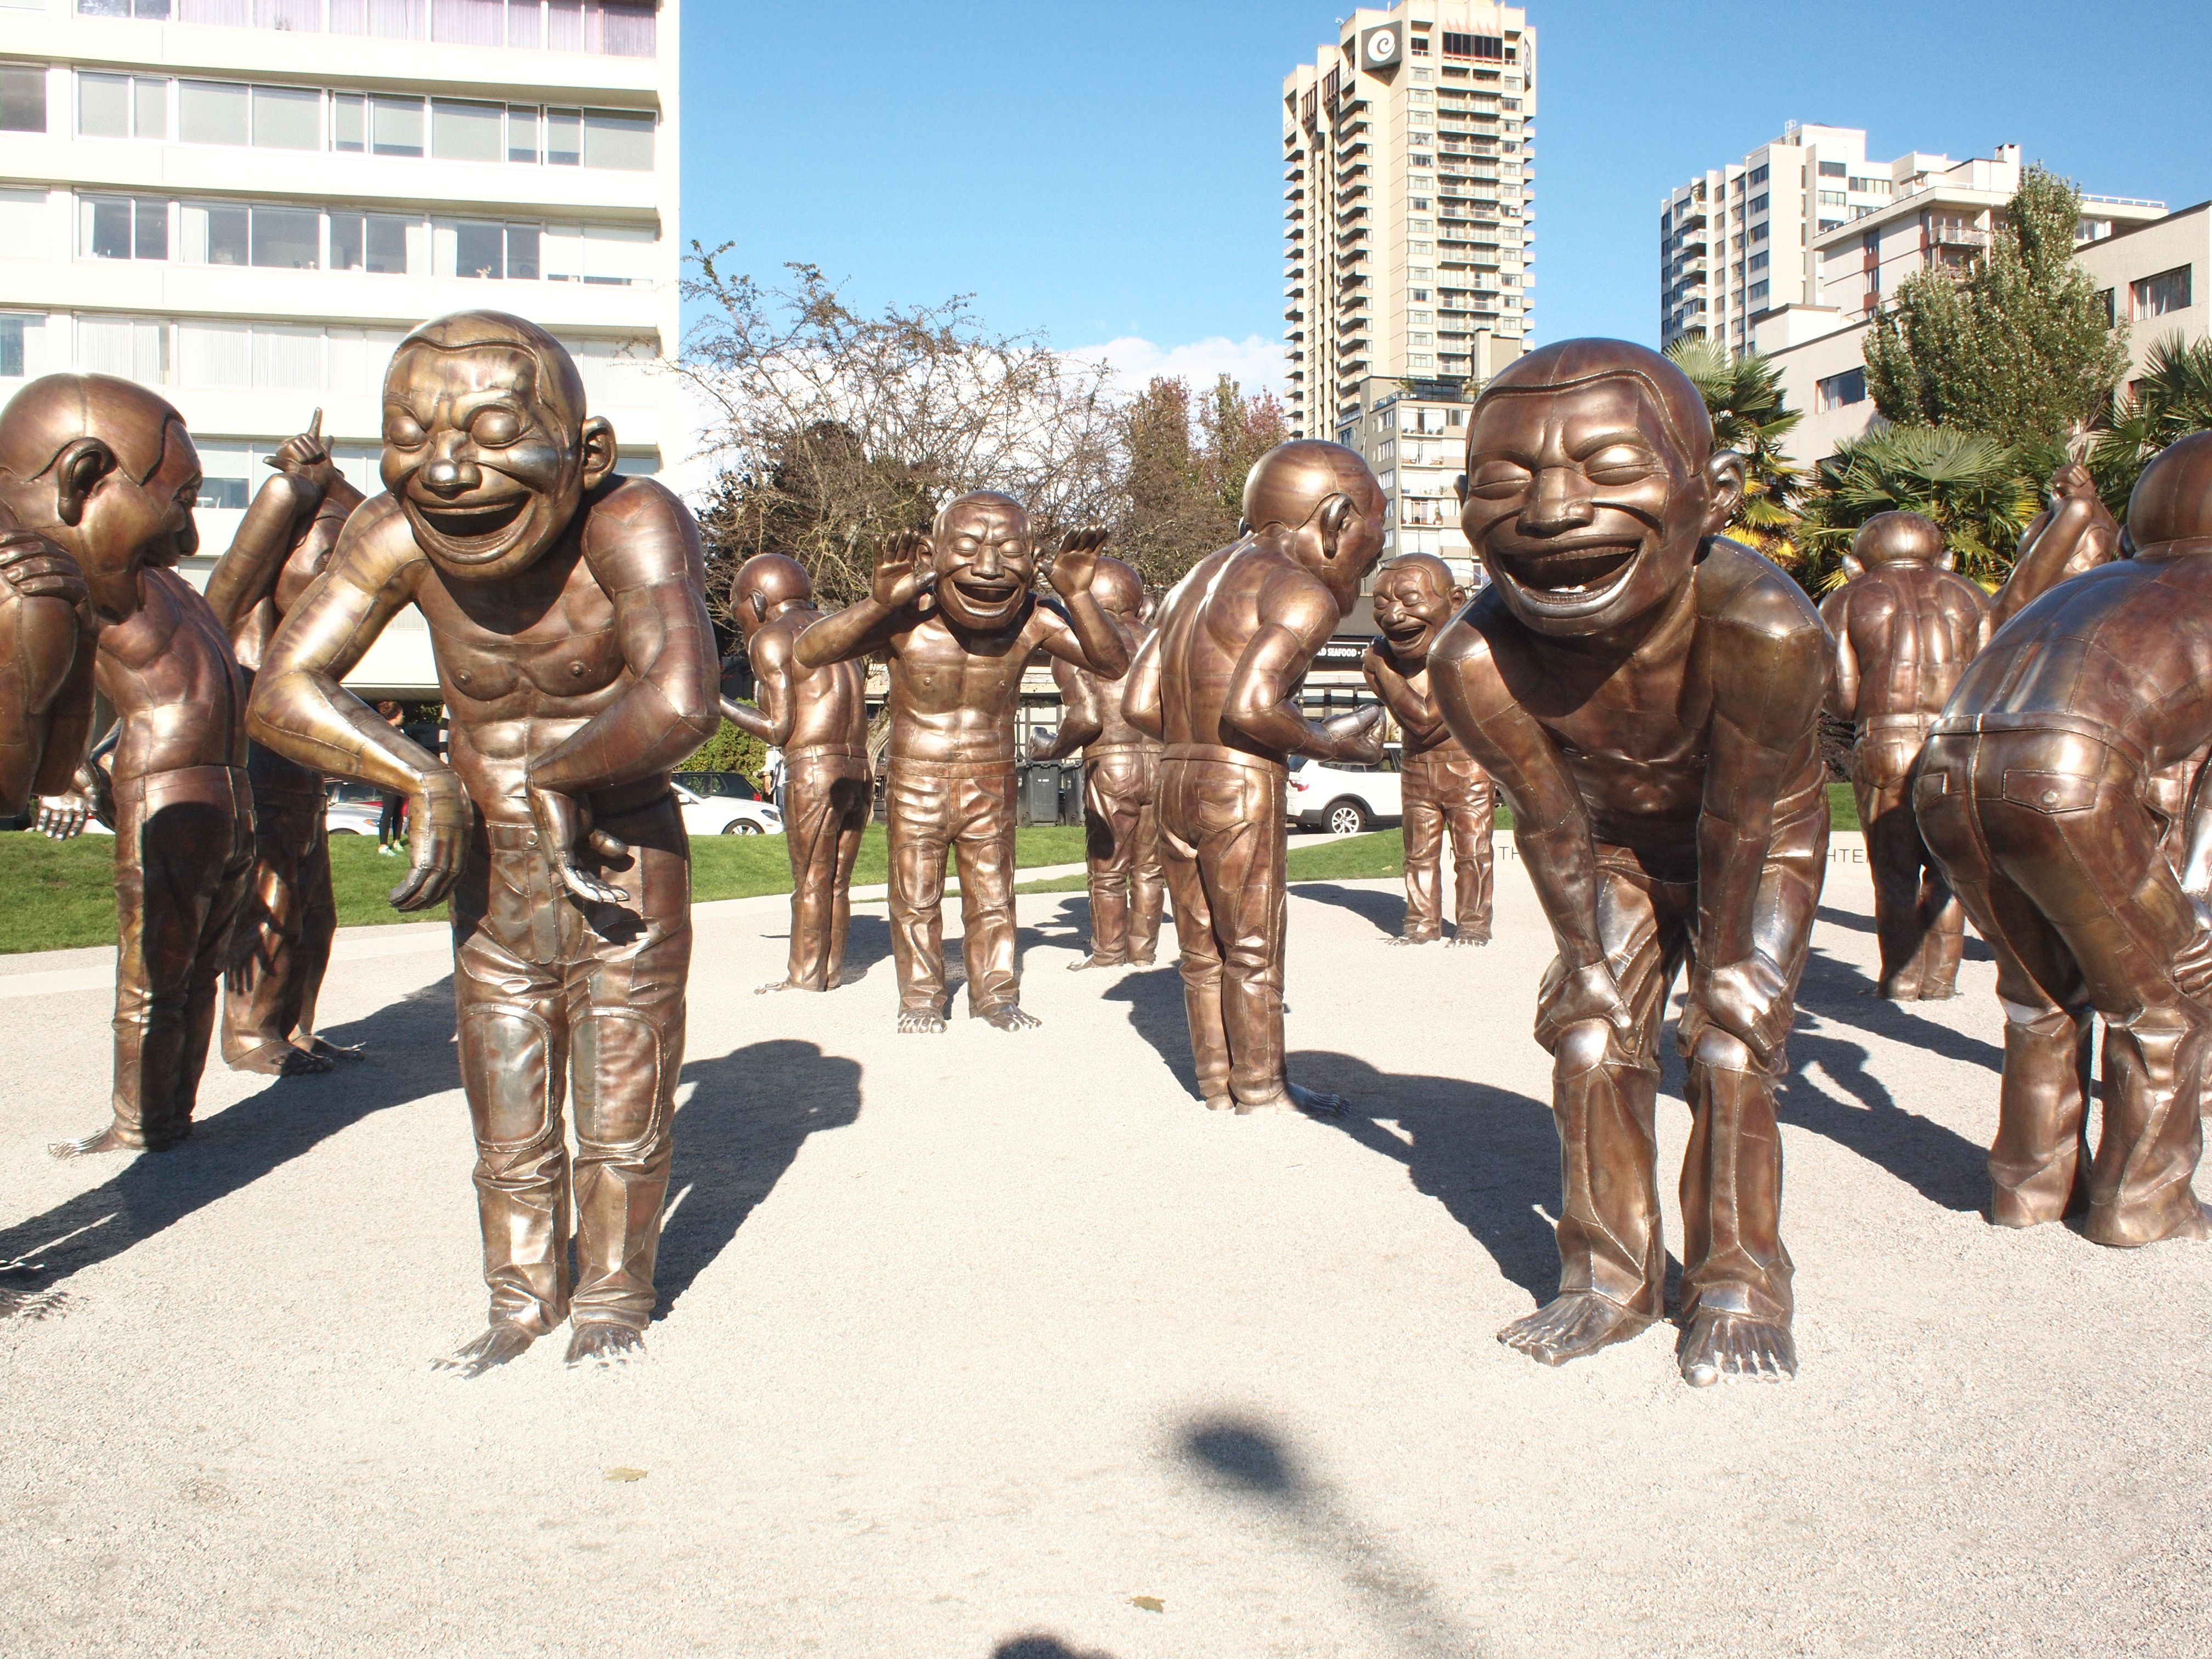 laughing-statues.jpg